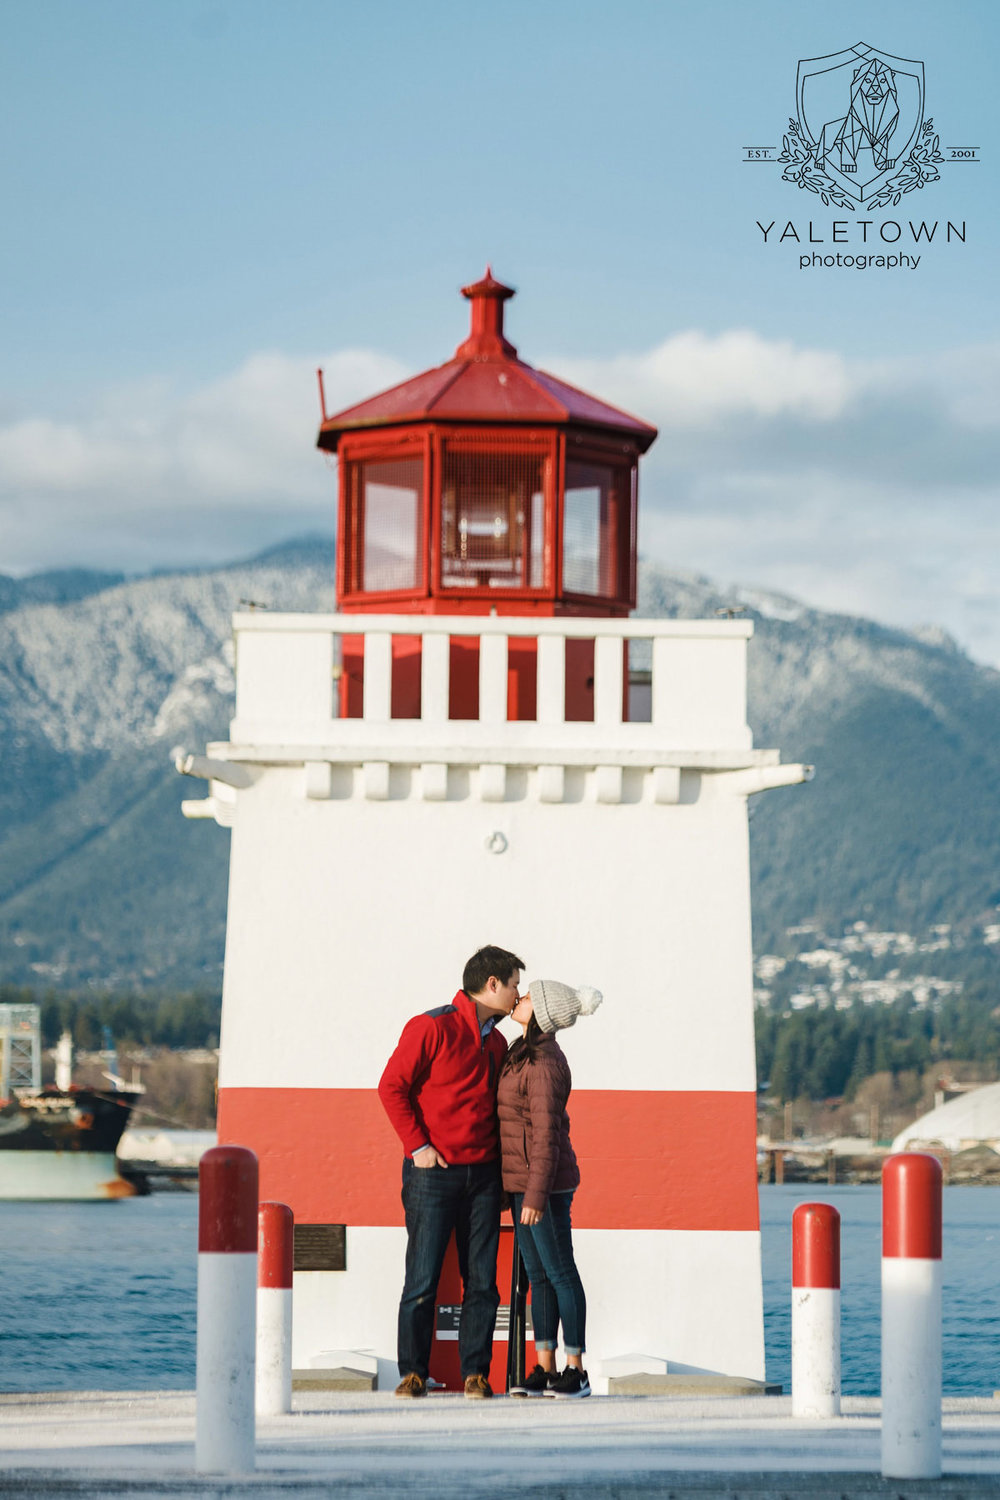 Wedding-Proposal-Vancouver-Stanley-Park-Wedding-Photographer-Vancouver-Yaletown-Photography-Photo-19.JPG